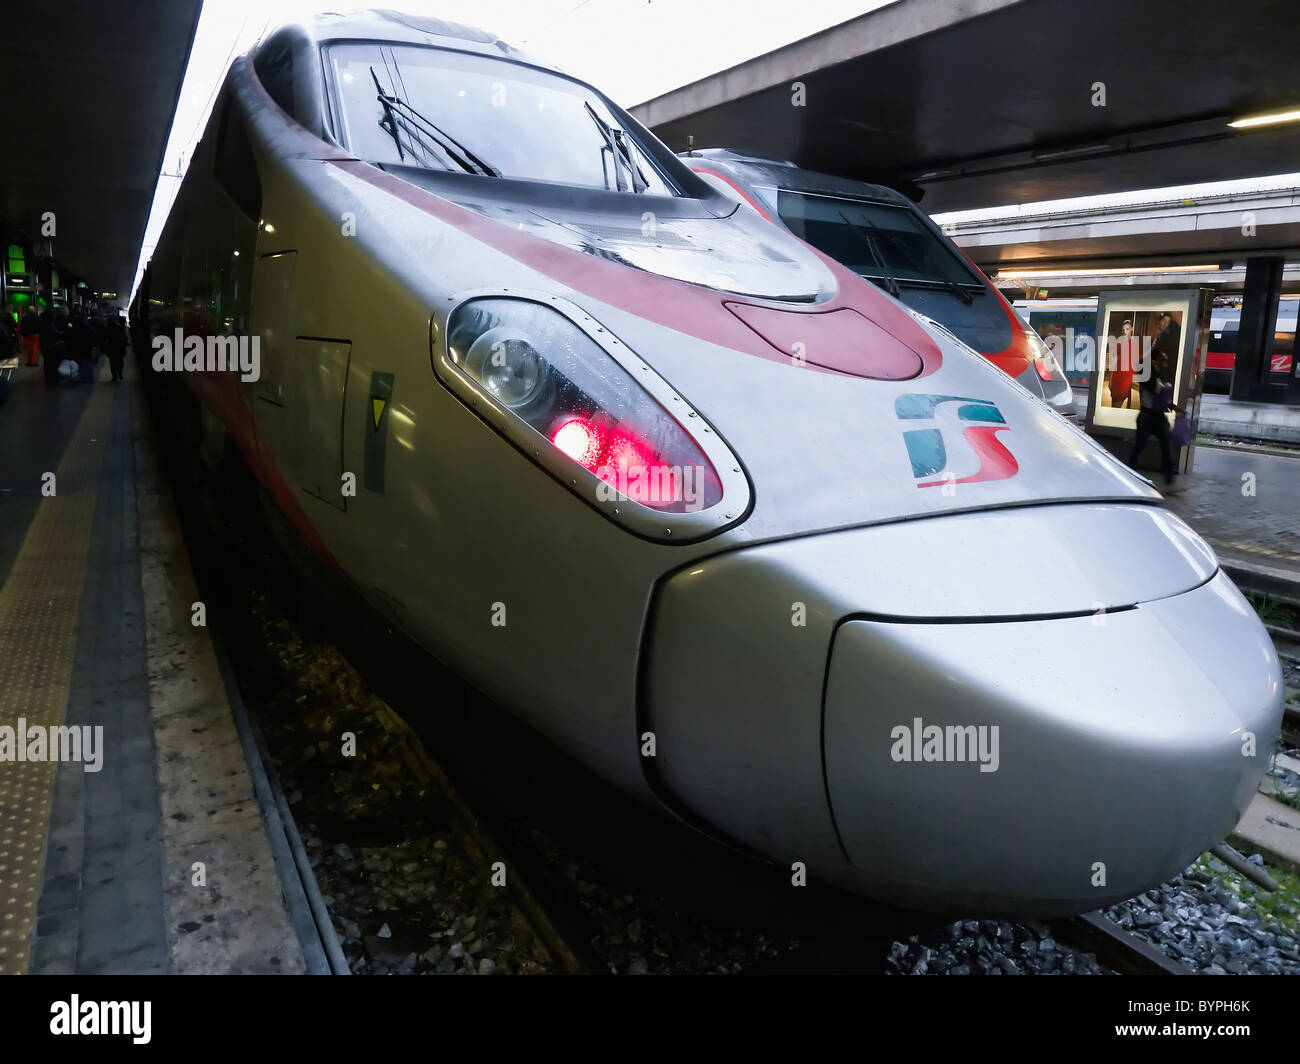 Close Up View of an Eurostar Locomotive, Roma Termini, Italy - Stock Image